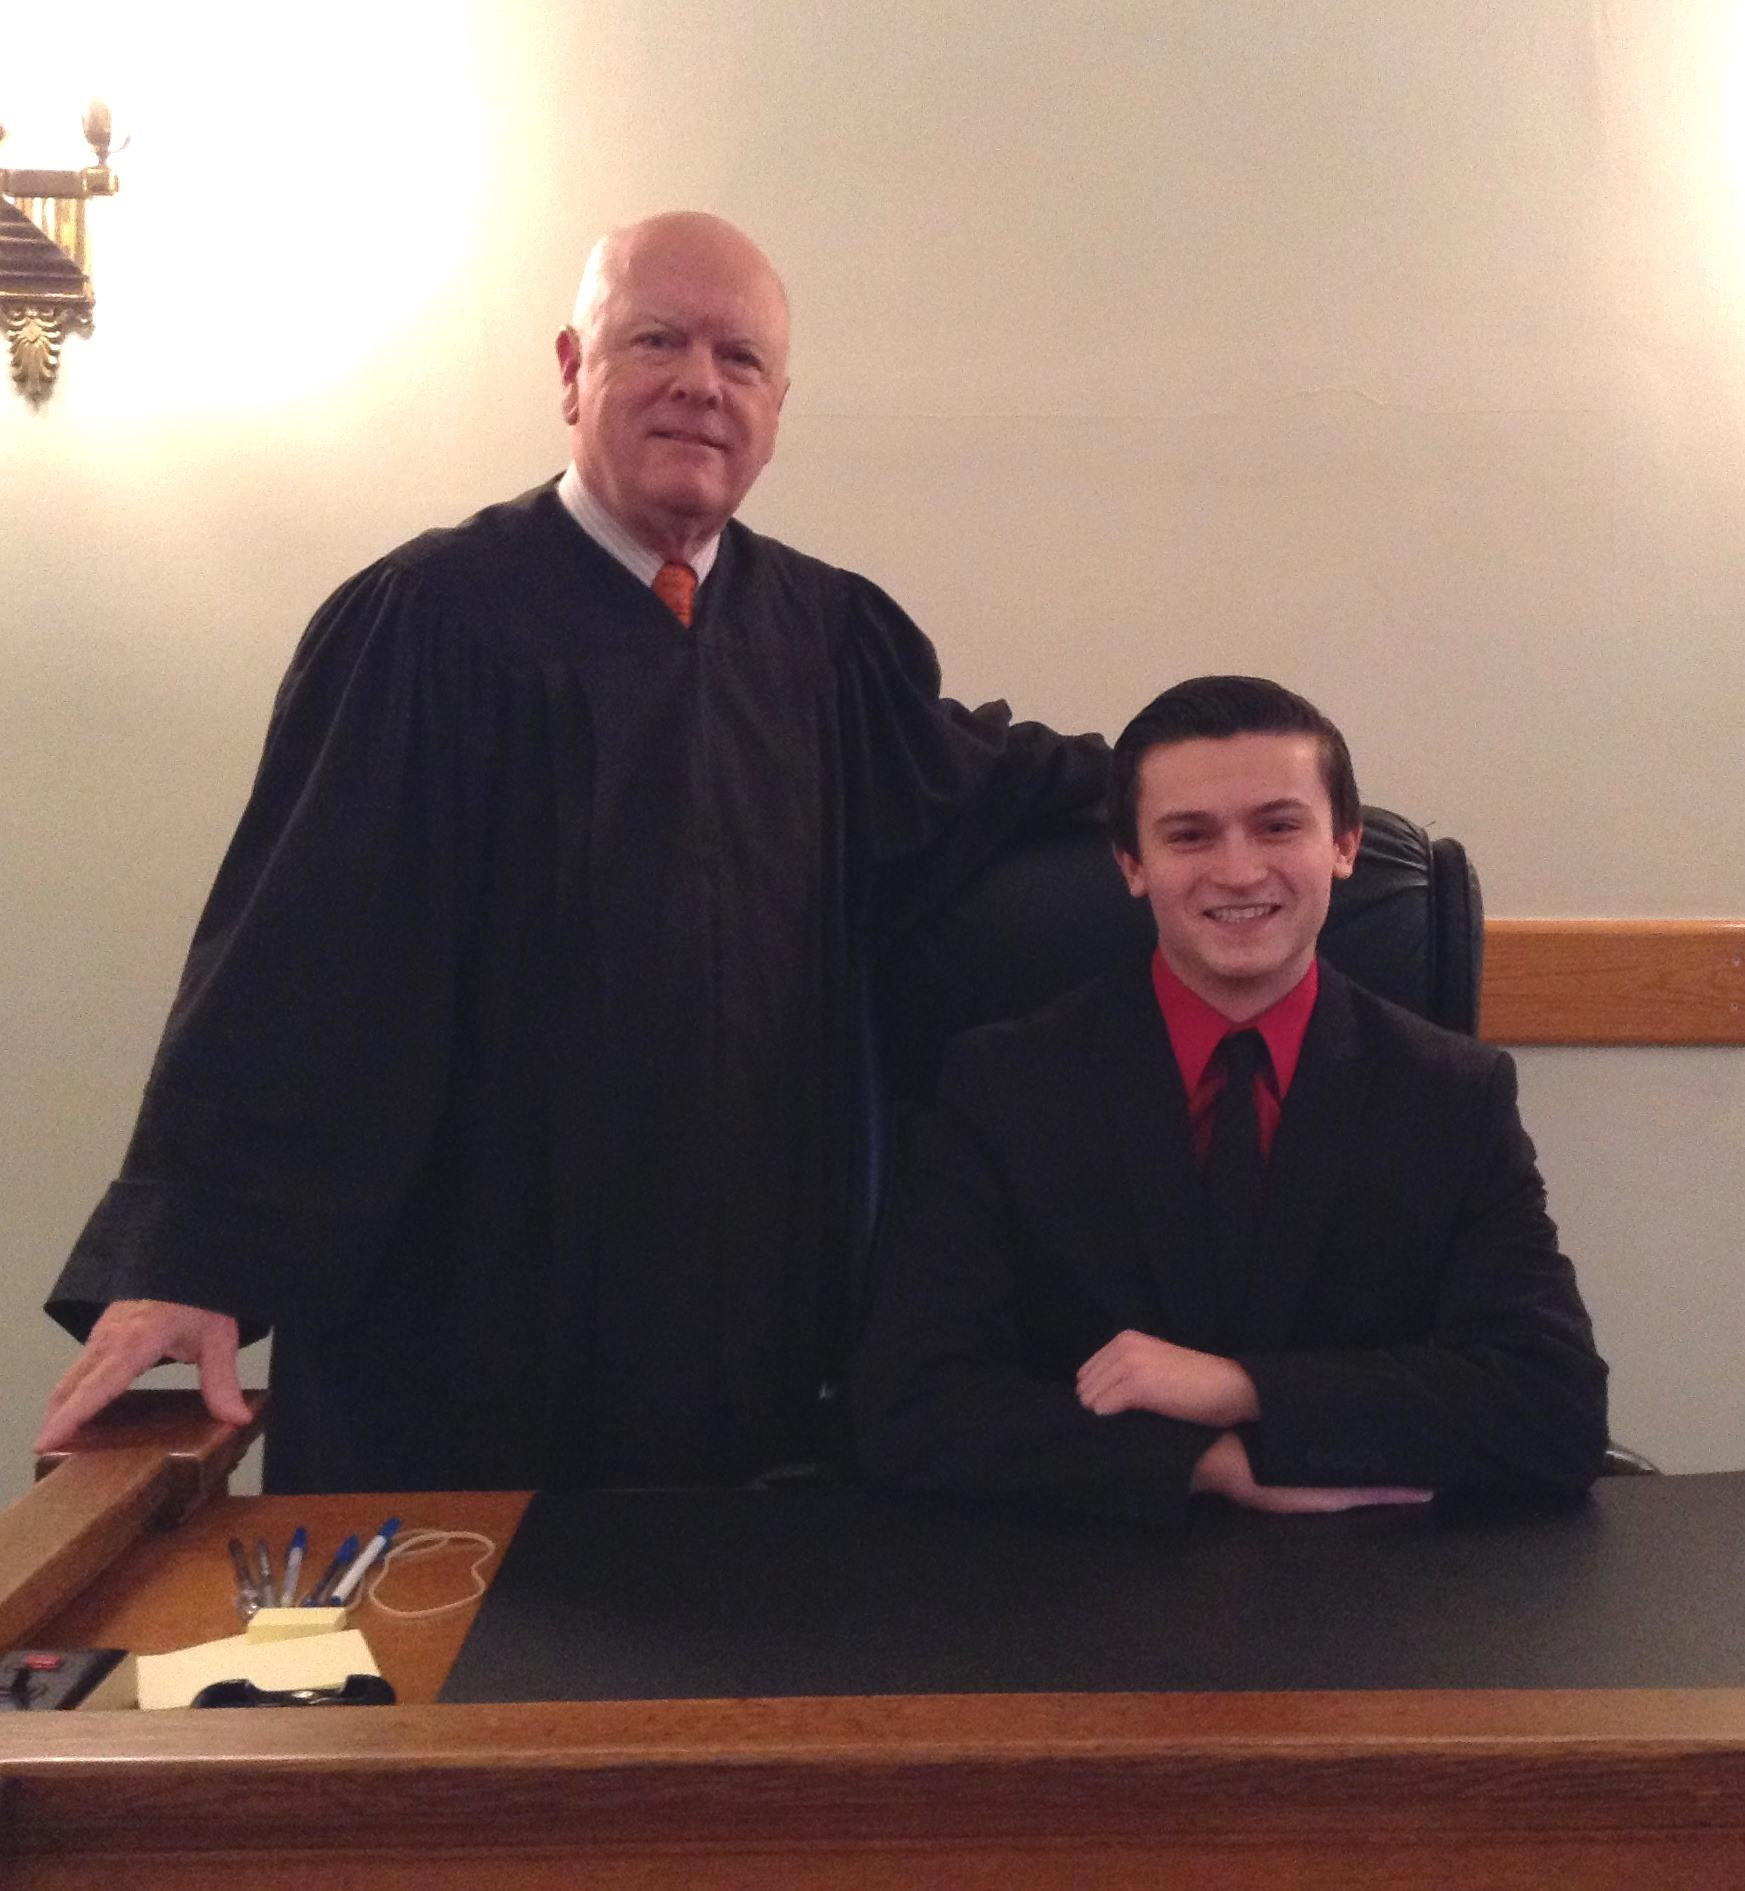 Judge McD and Colton